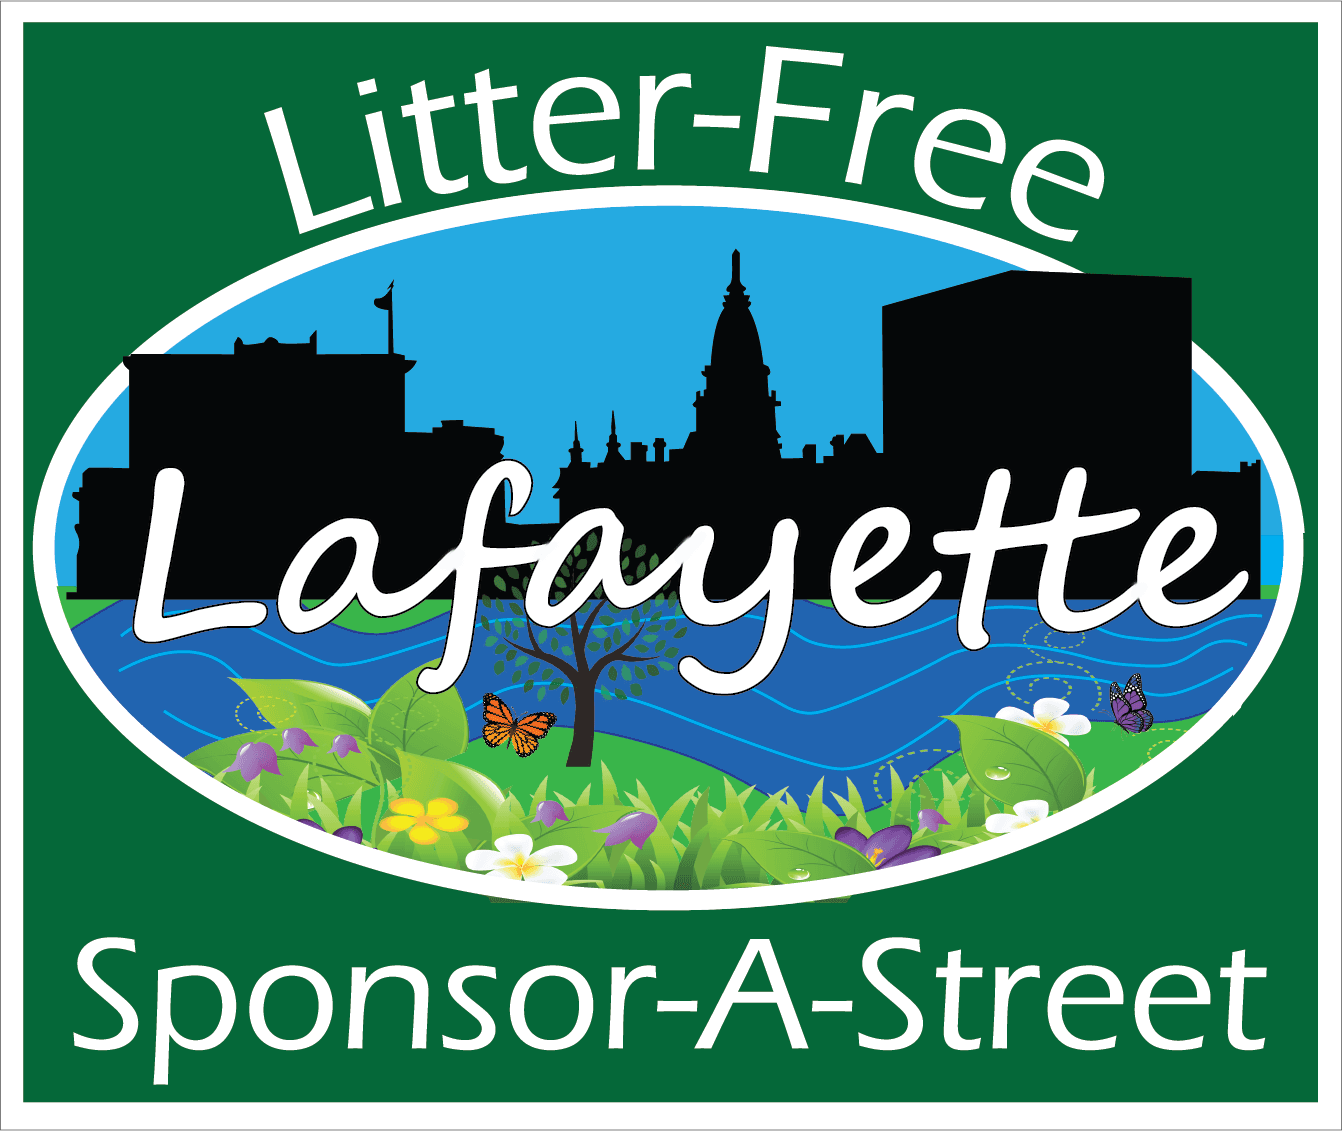 Litter Free Lafayette Sponsor-A-Street sign - Eras Medium ITC